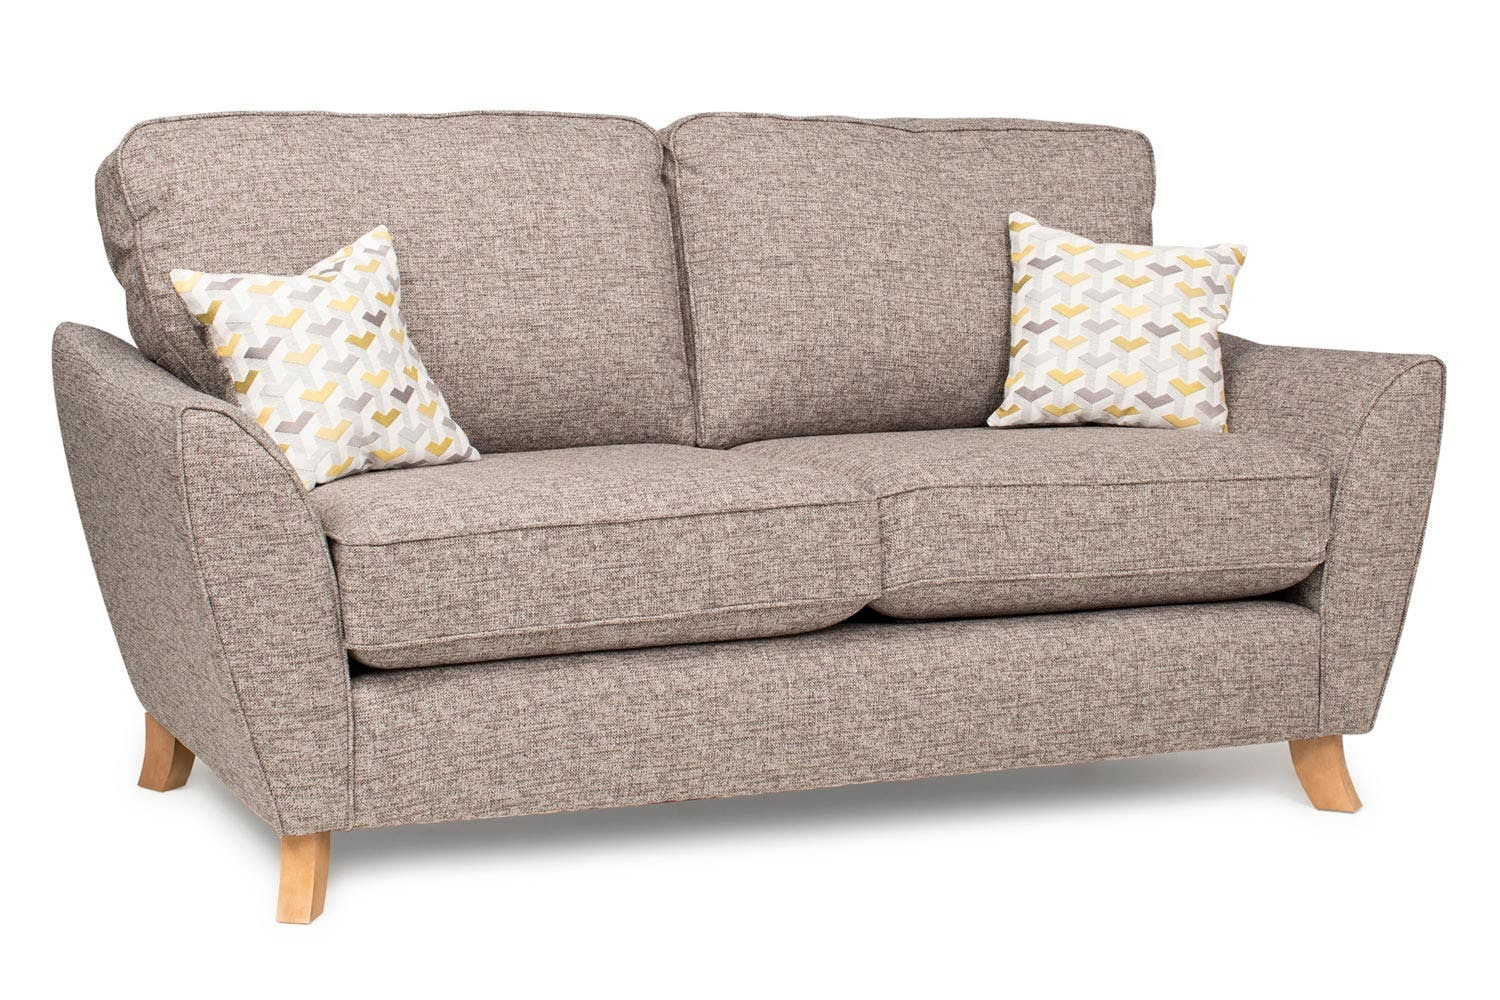 Joanna 2 Seater Sofa